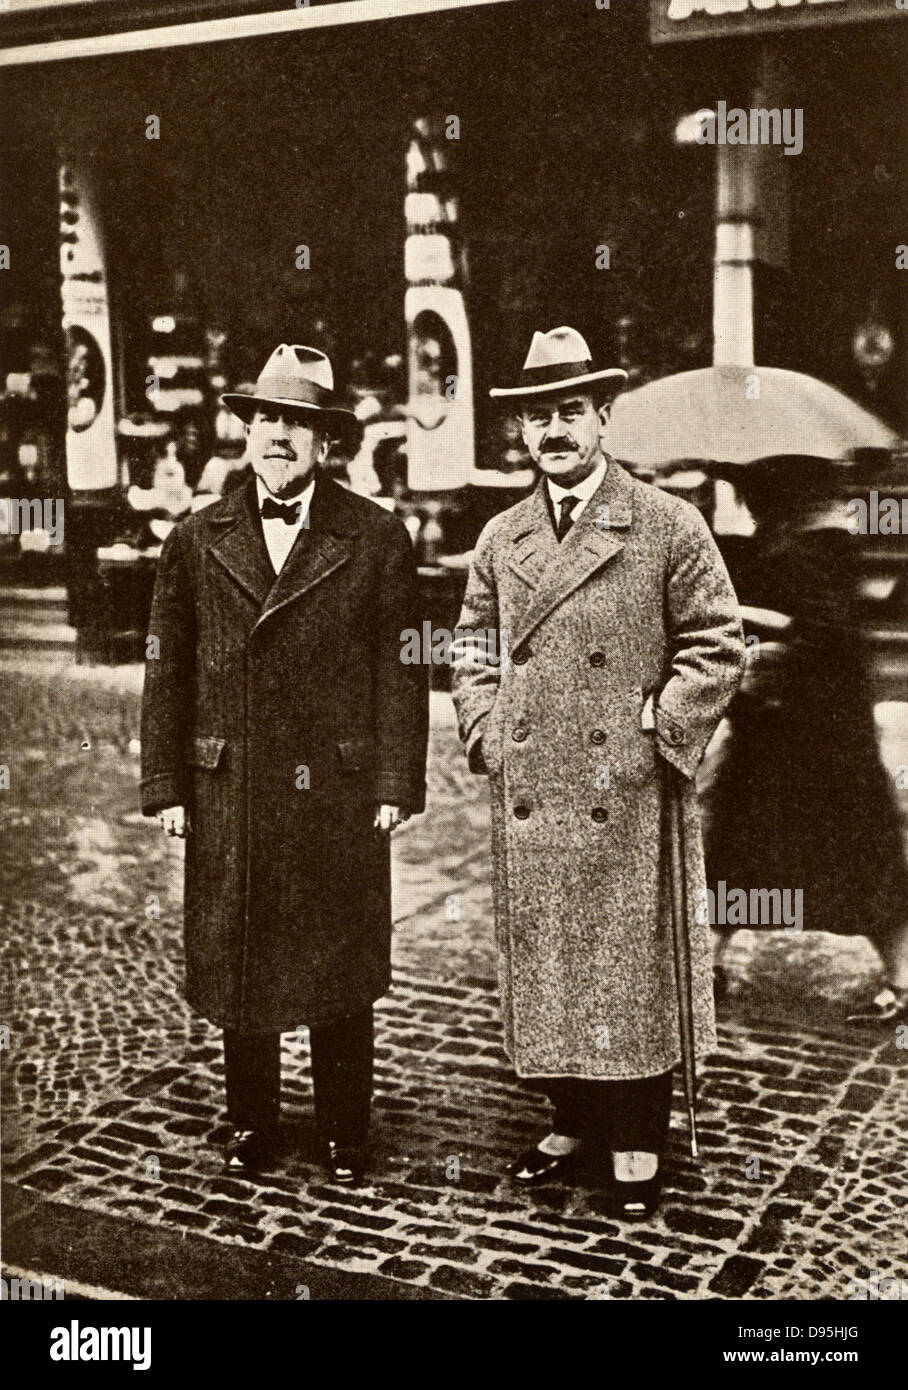 Heinrich Mann (1871-1950), left, and Thomas Mann (1875-1955) German novelists. In 1929 Thomas was awarded the Nobel - Stock Image